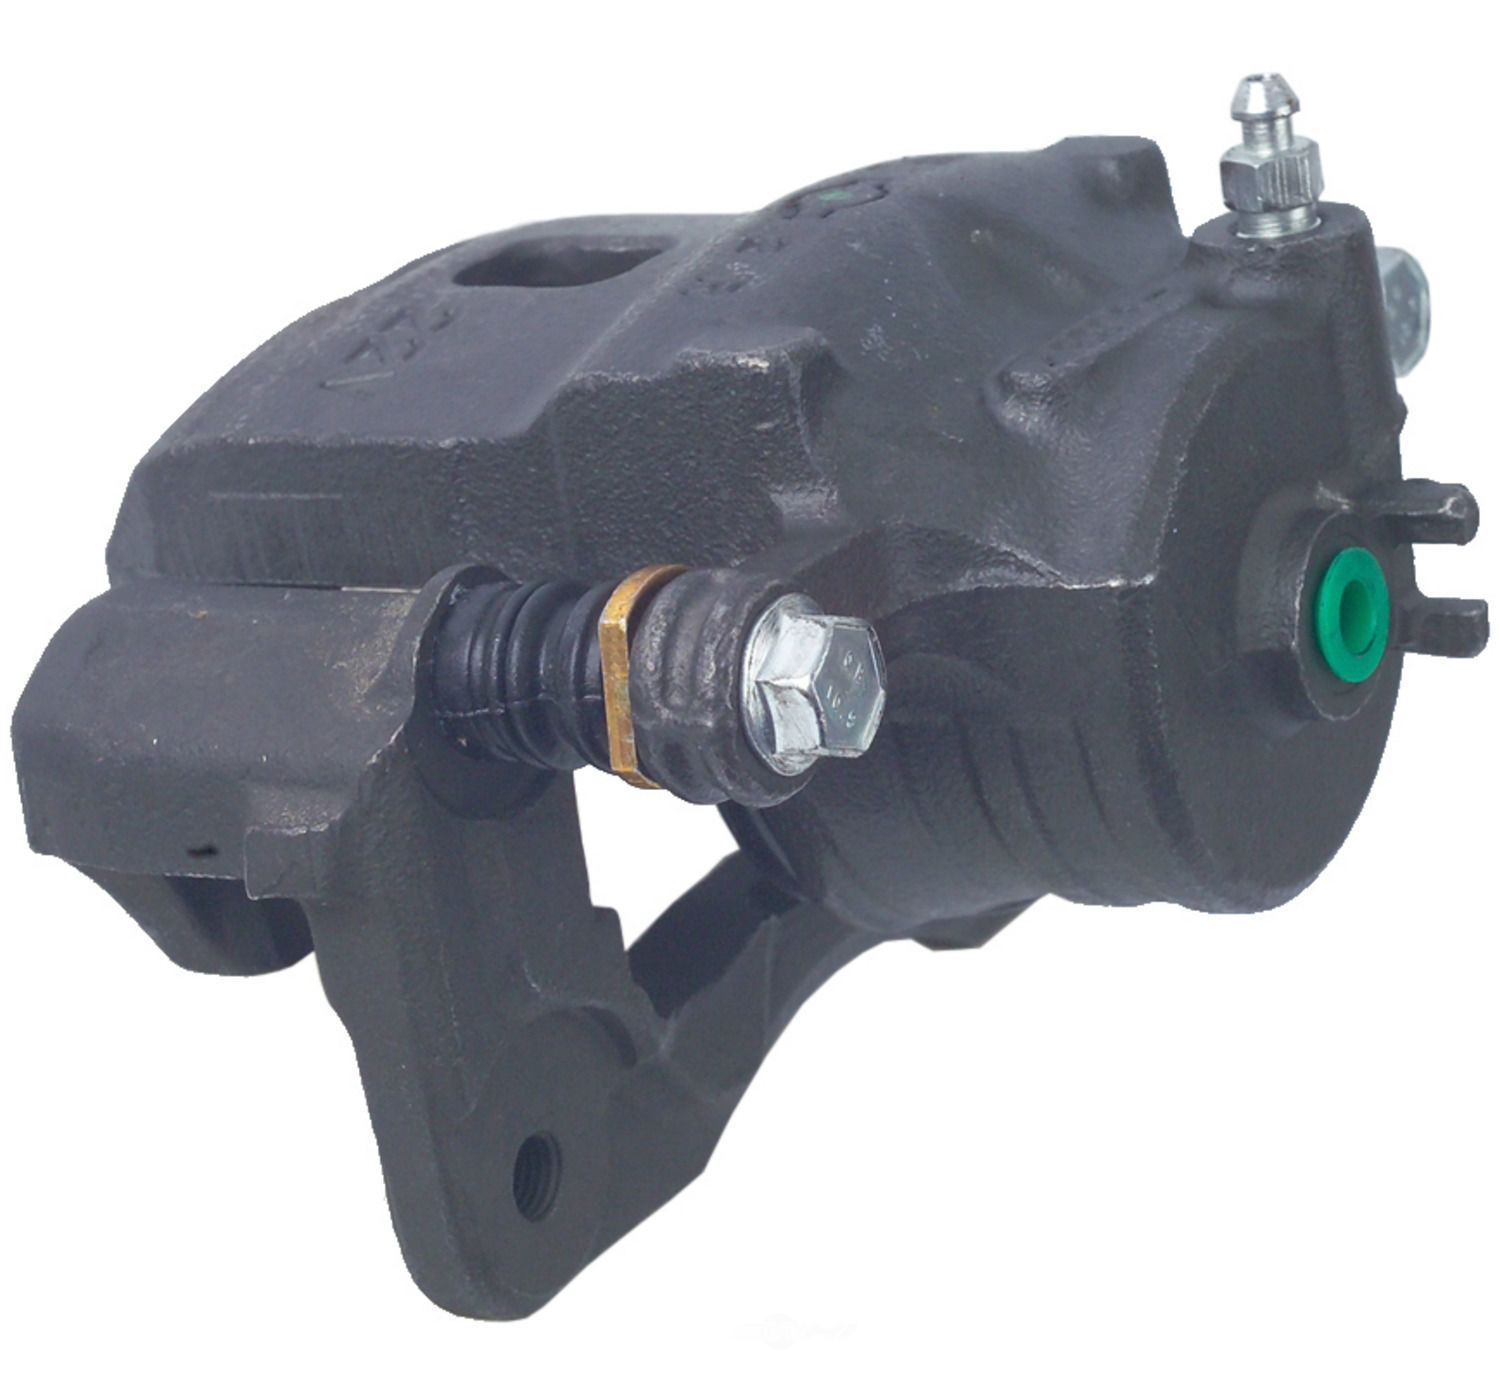 PRONTO/CARDONE - Remanufactured Friction Choice Caliper w/Bracket (Front Right) - PNX 19-B1793